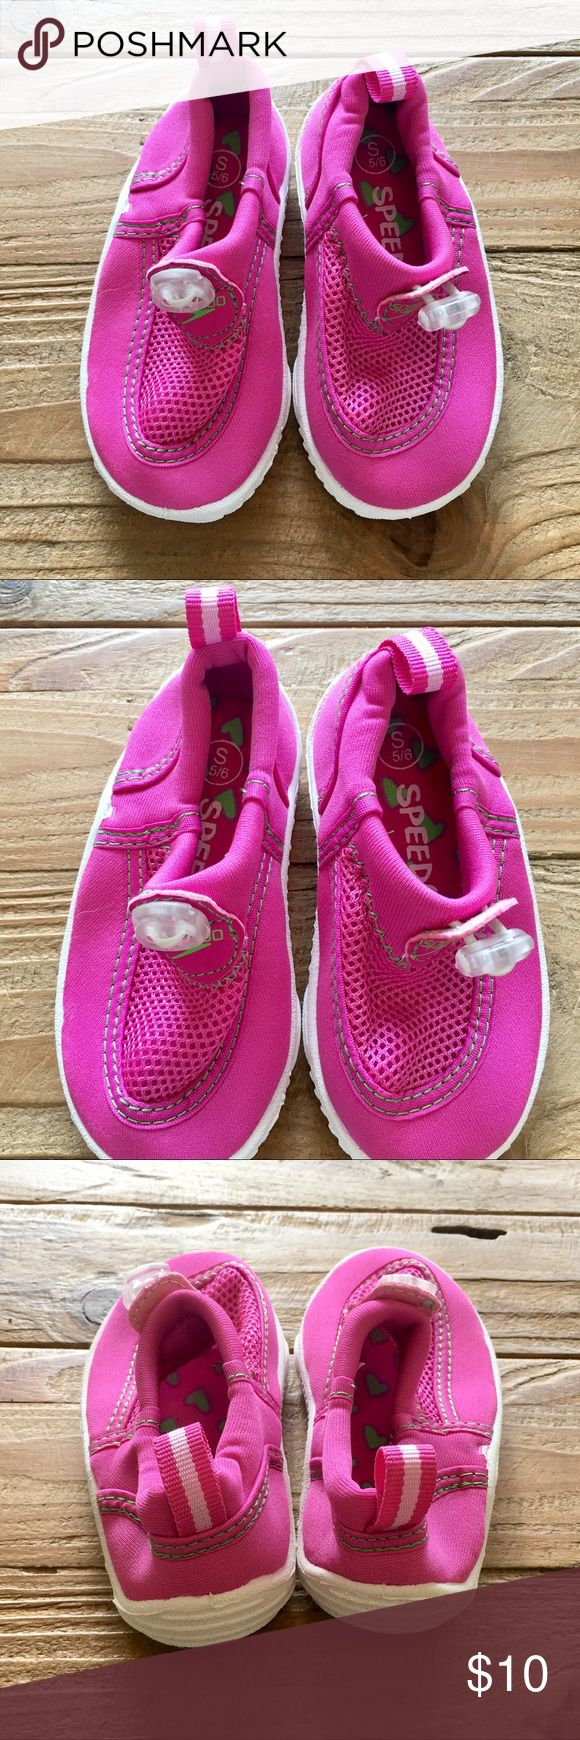 Girls Water Shoes NWOT Girls Speedo water shoes in pink. Never worn. Perfect condition. Speedo Shoes Water Shoes